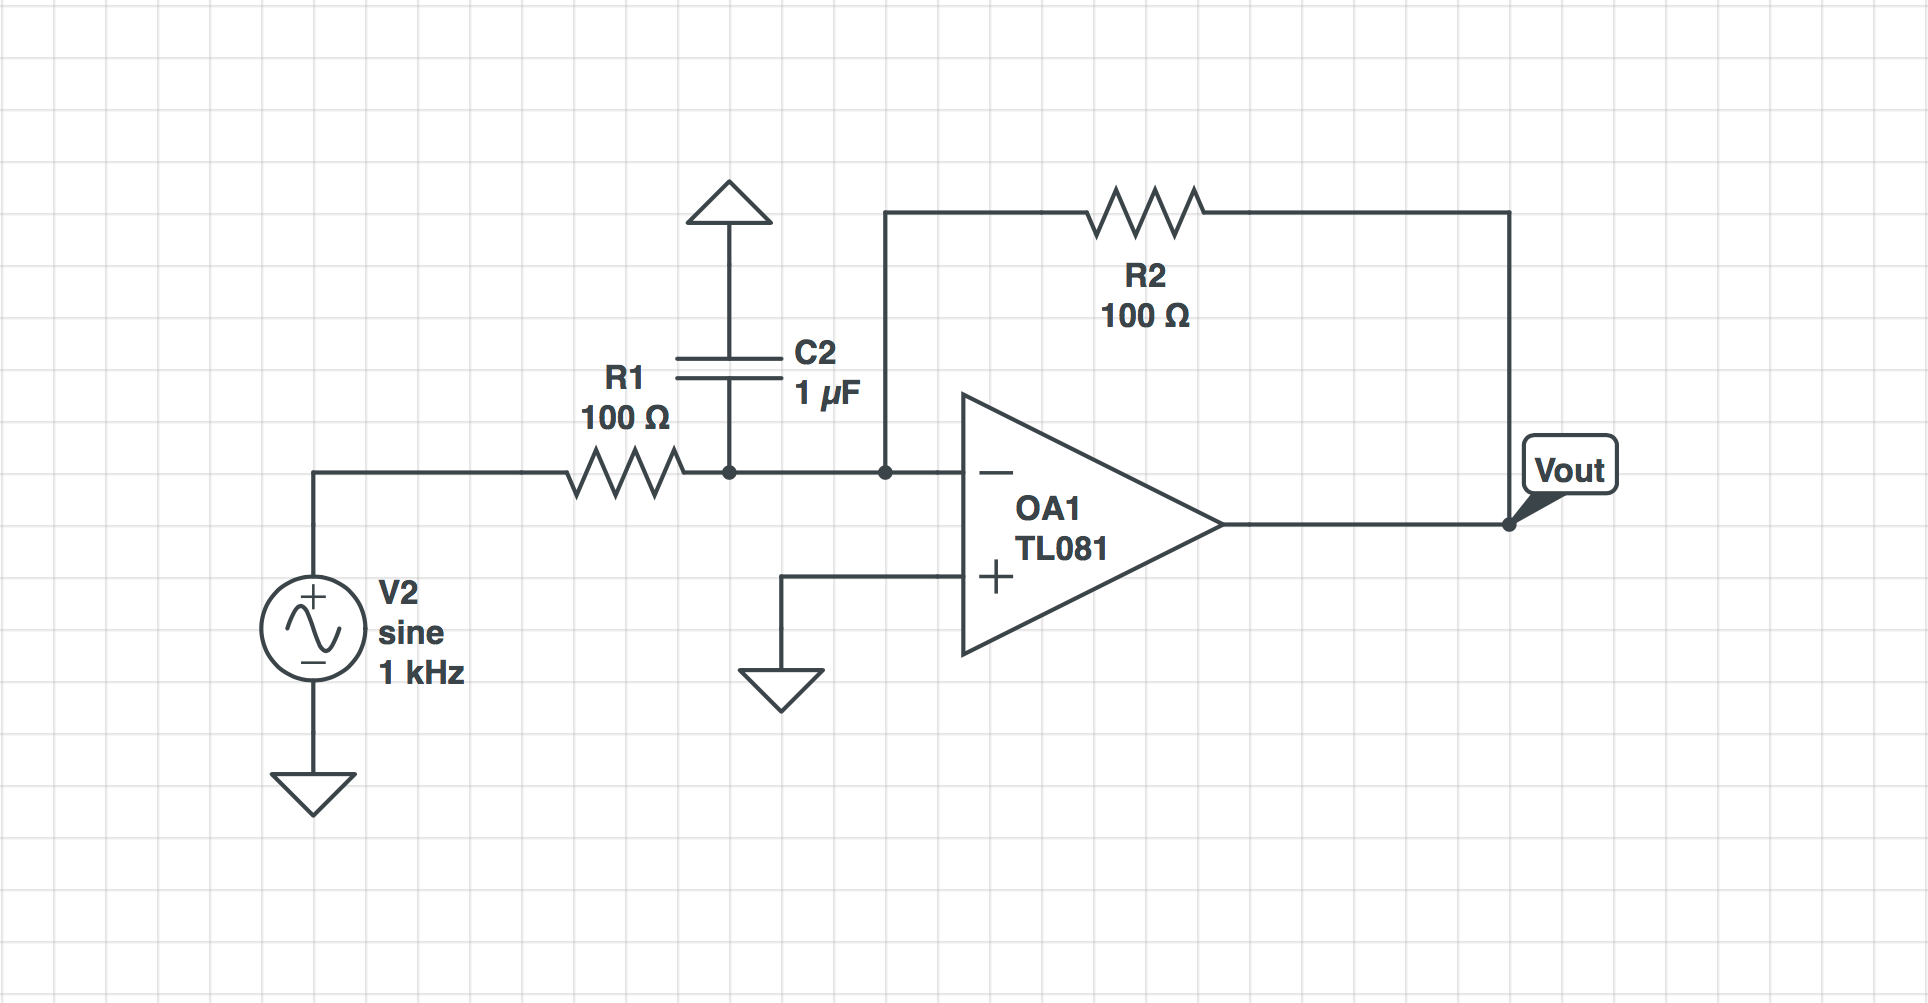 How Exactly Are The Phase Shift And Cutoff Frequency